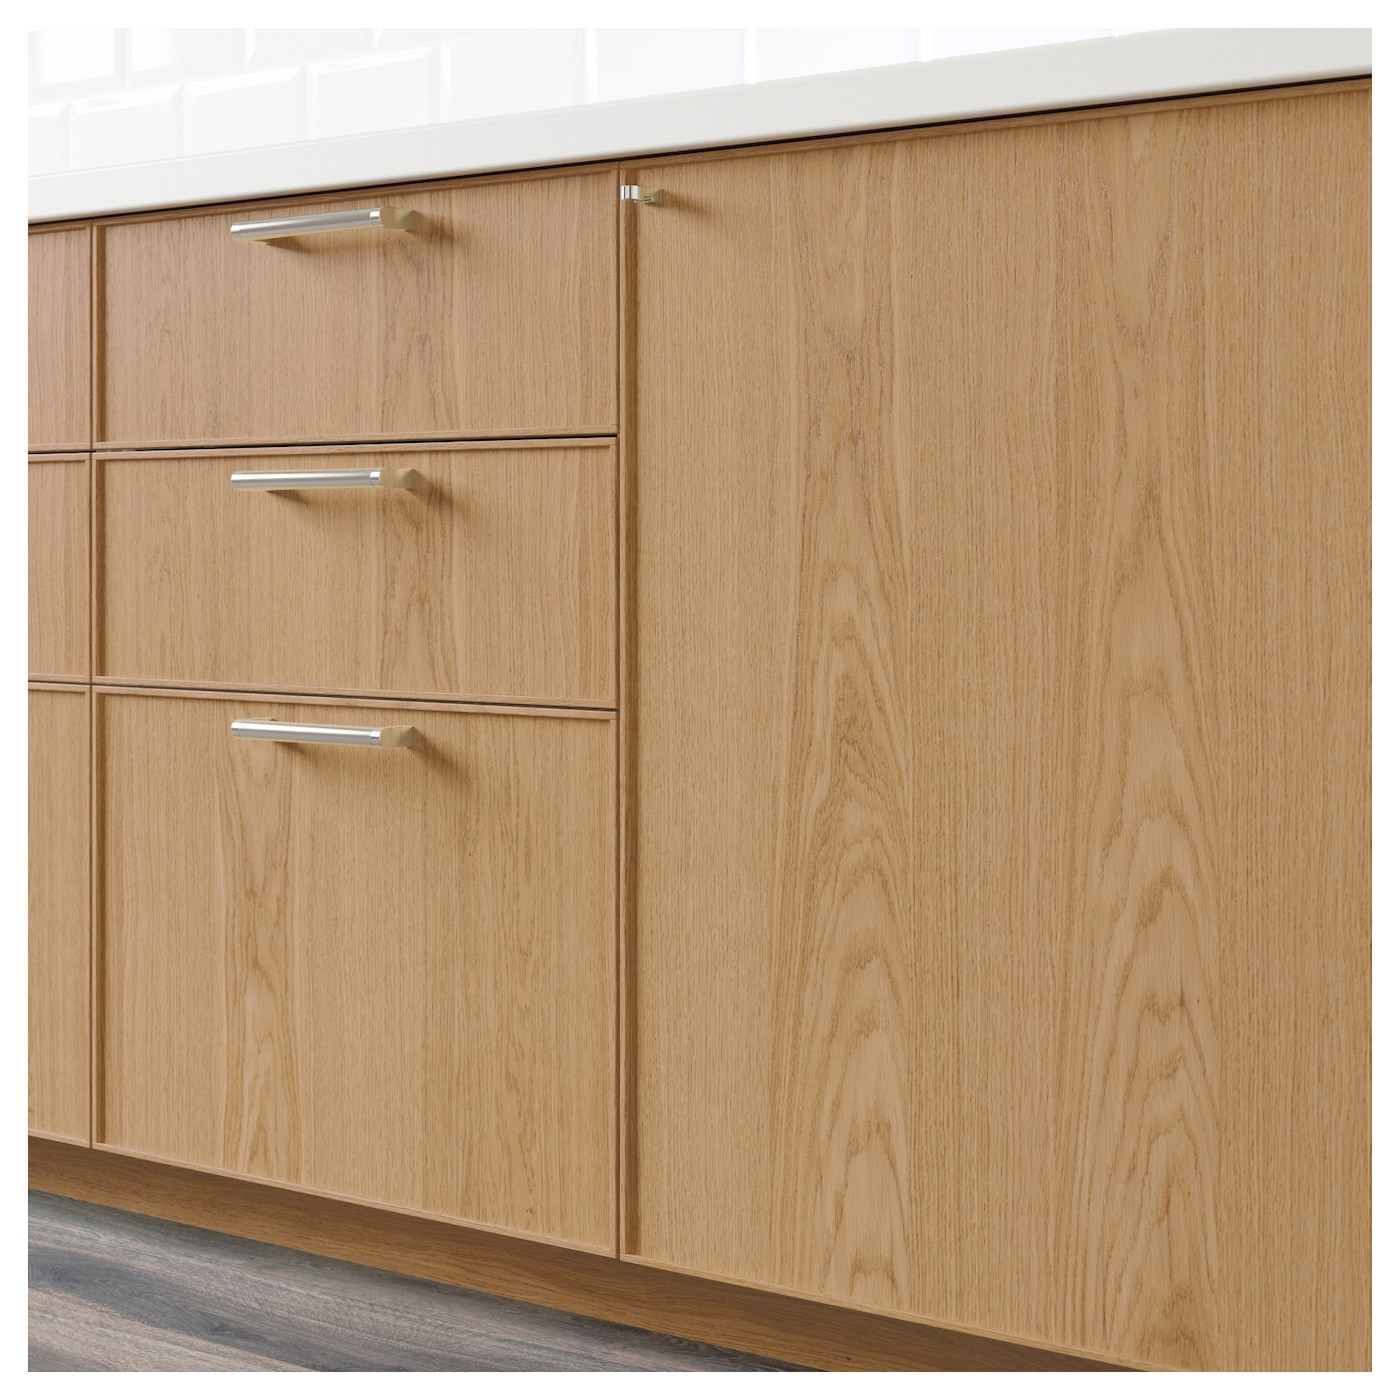 Kitchen Cabinet Door Fronts: EKESTAD Drawer Front Oak 40 X 20 Cm